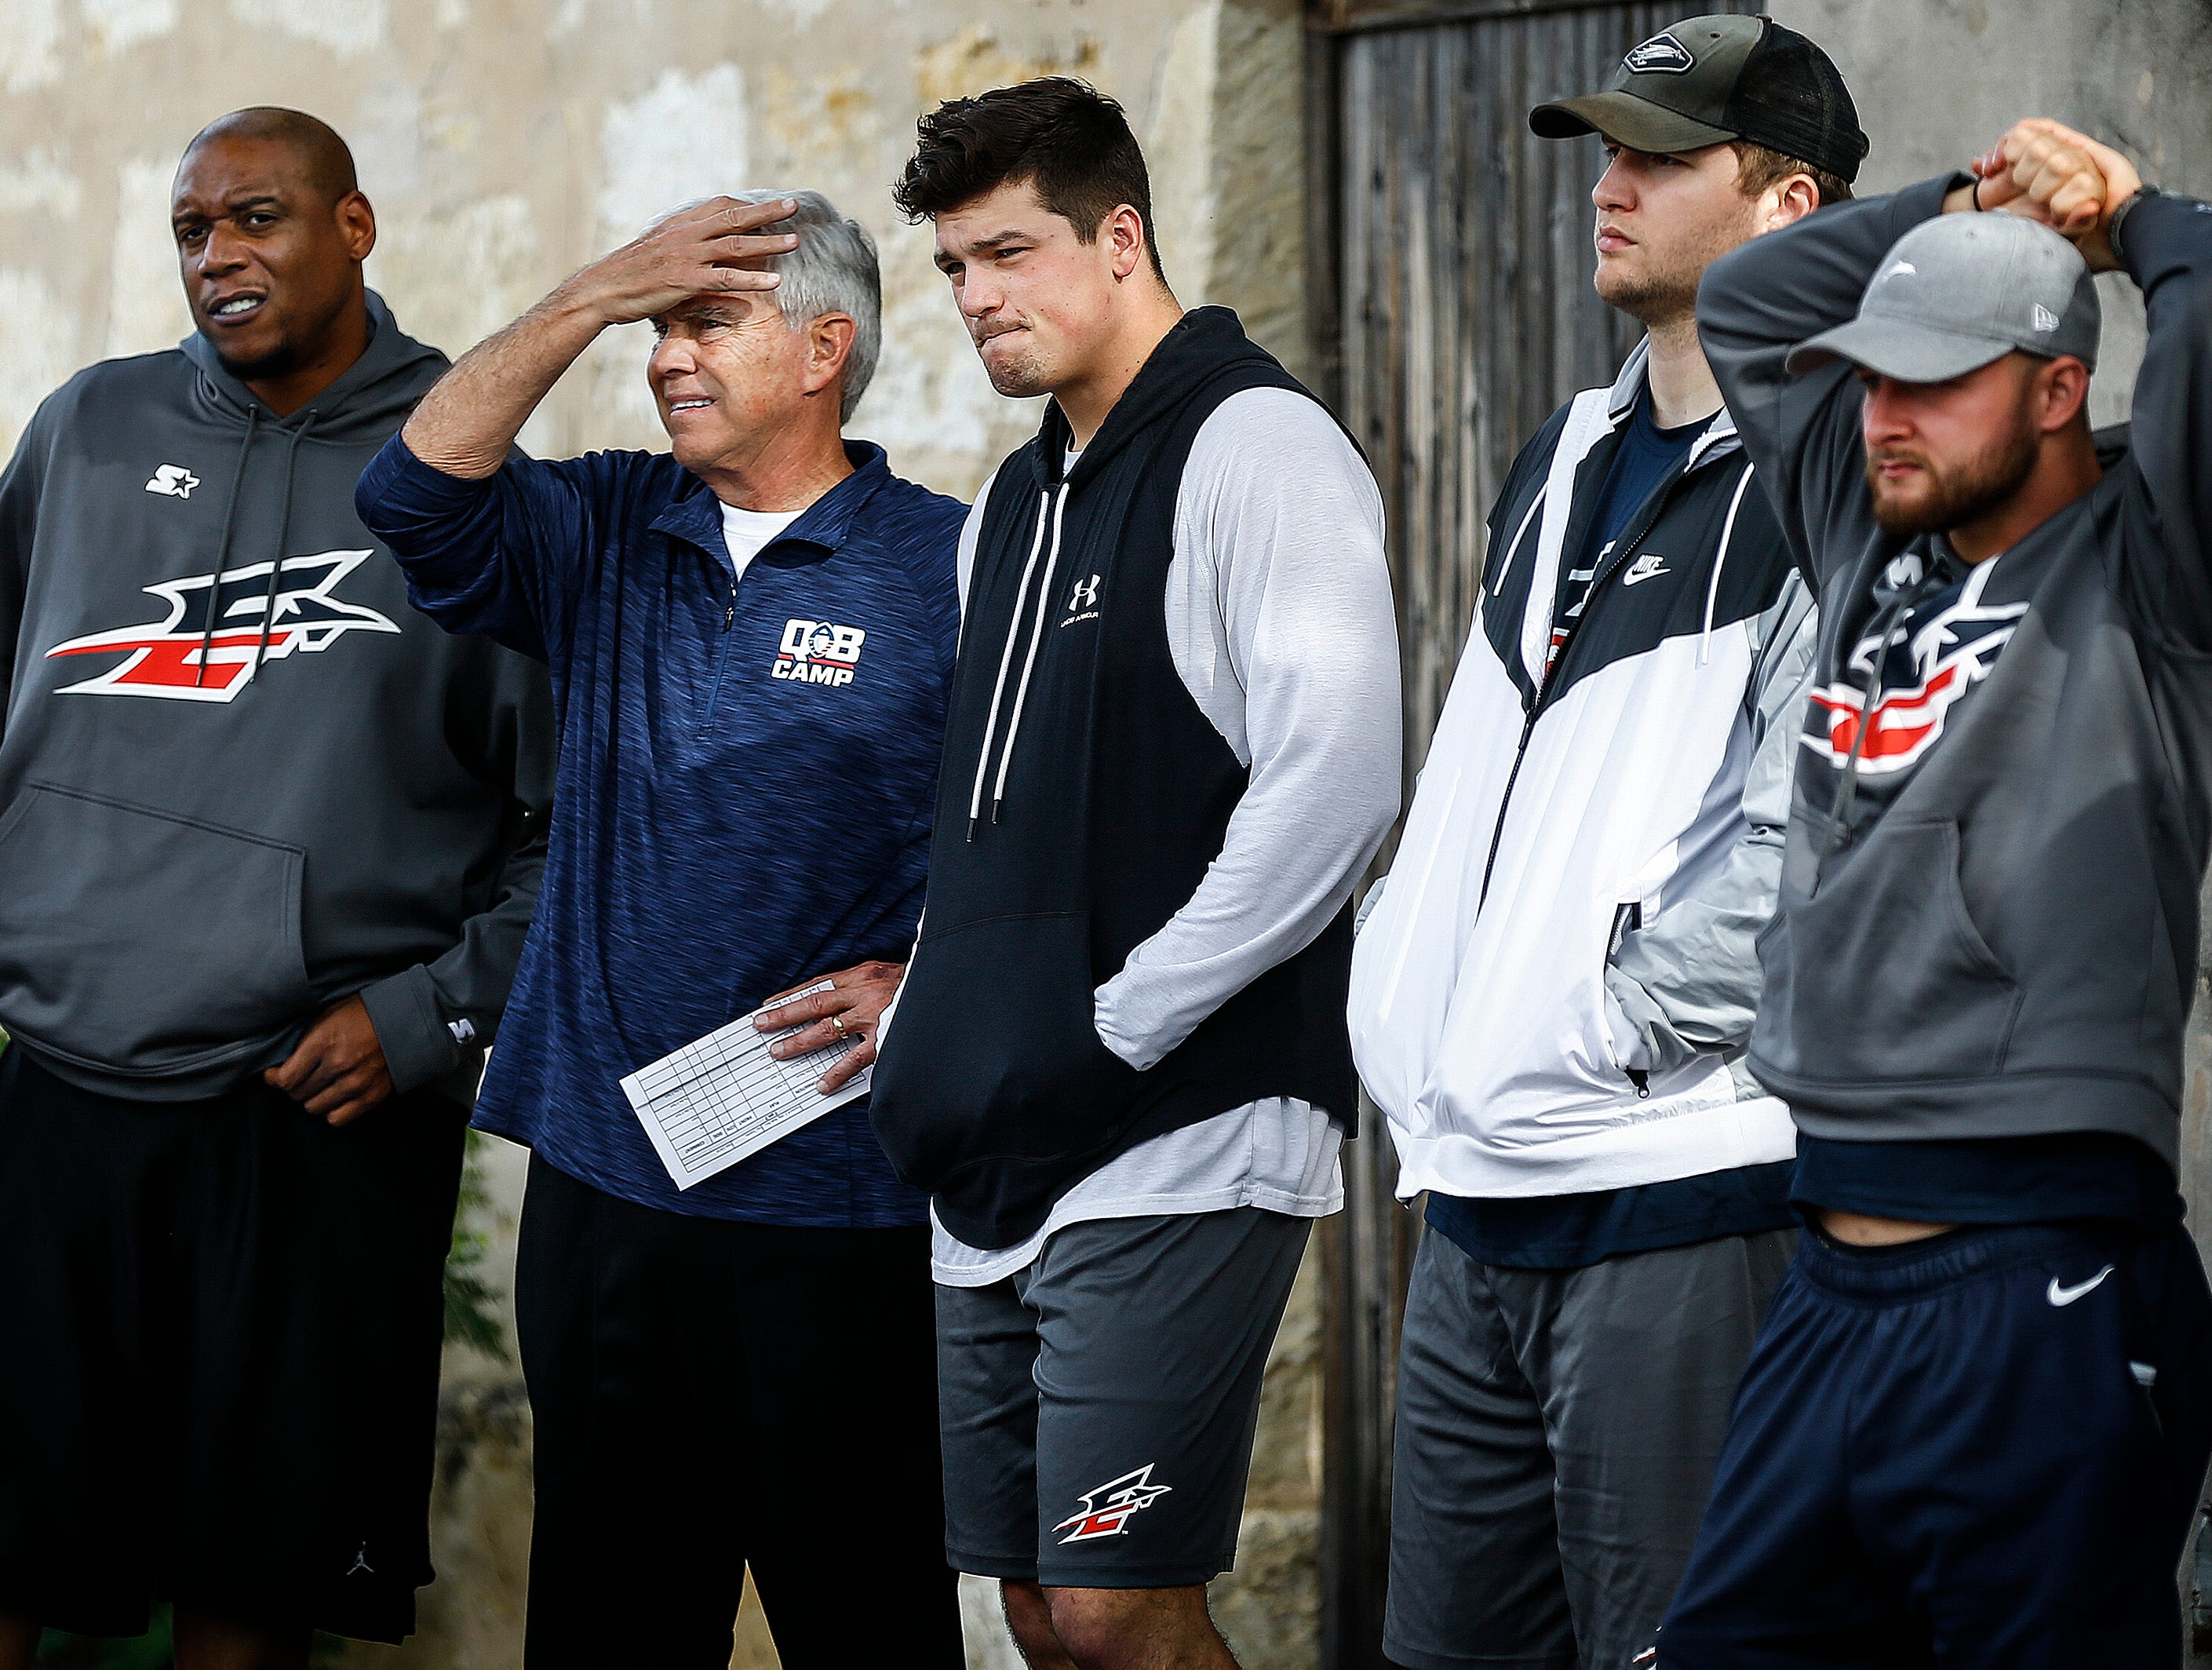 Memphis Express offensive coordinator David Lee (middle left) and quarterback Christian Hackenberg (middle right) watch a team walk-through during training camp in San Antonio, Texas.